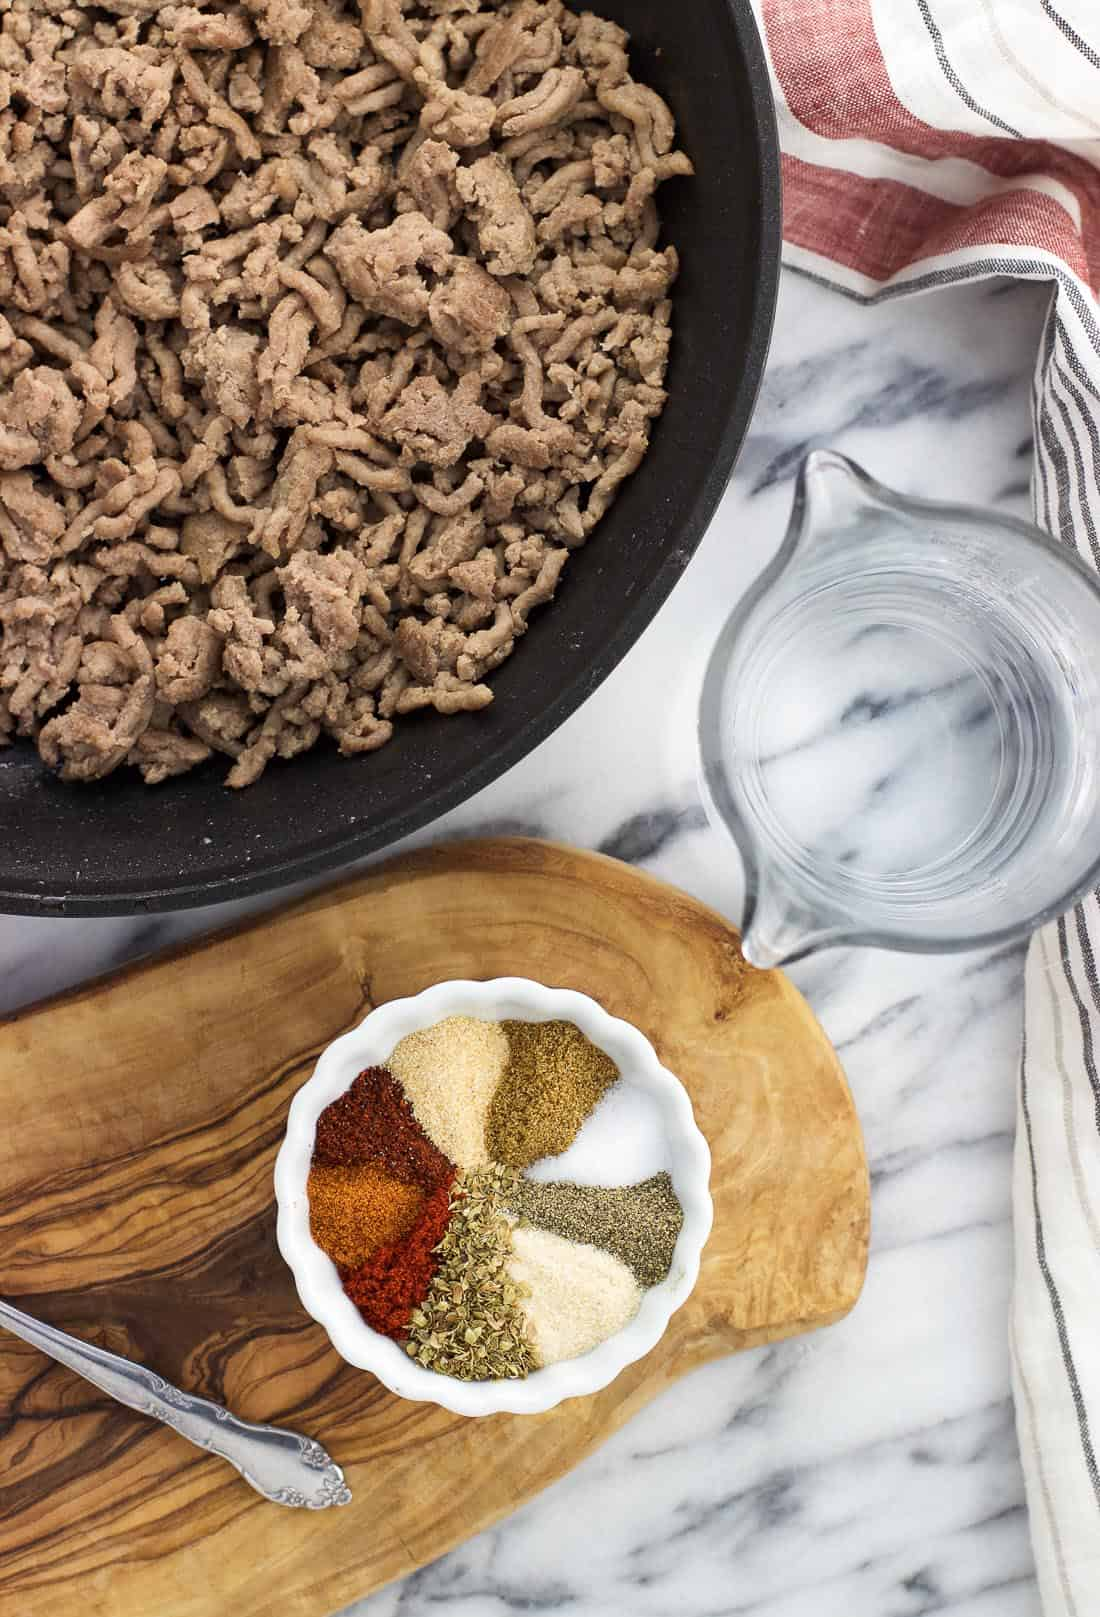 Crumbled cooked beef in a skillet next to a cup of water and a bowl of taco seasoning.